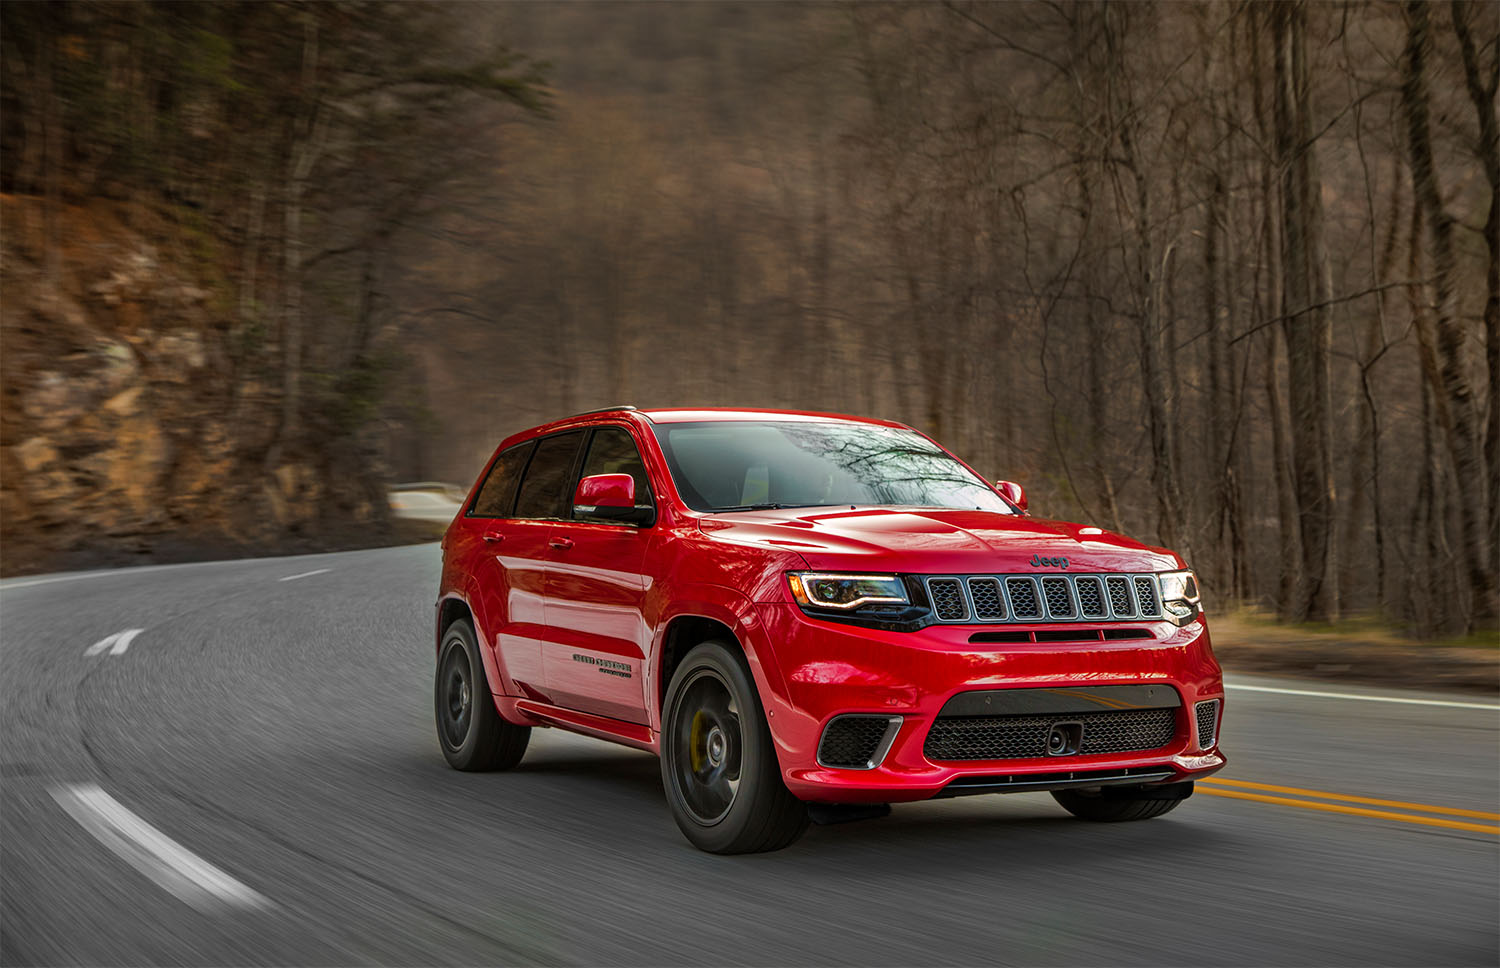 New Jeep available in Rockford, IL at Bryden Motors